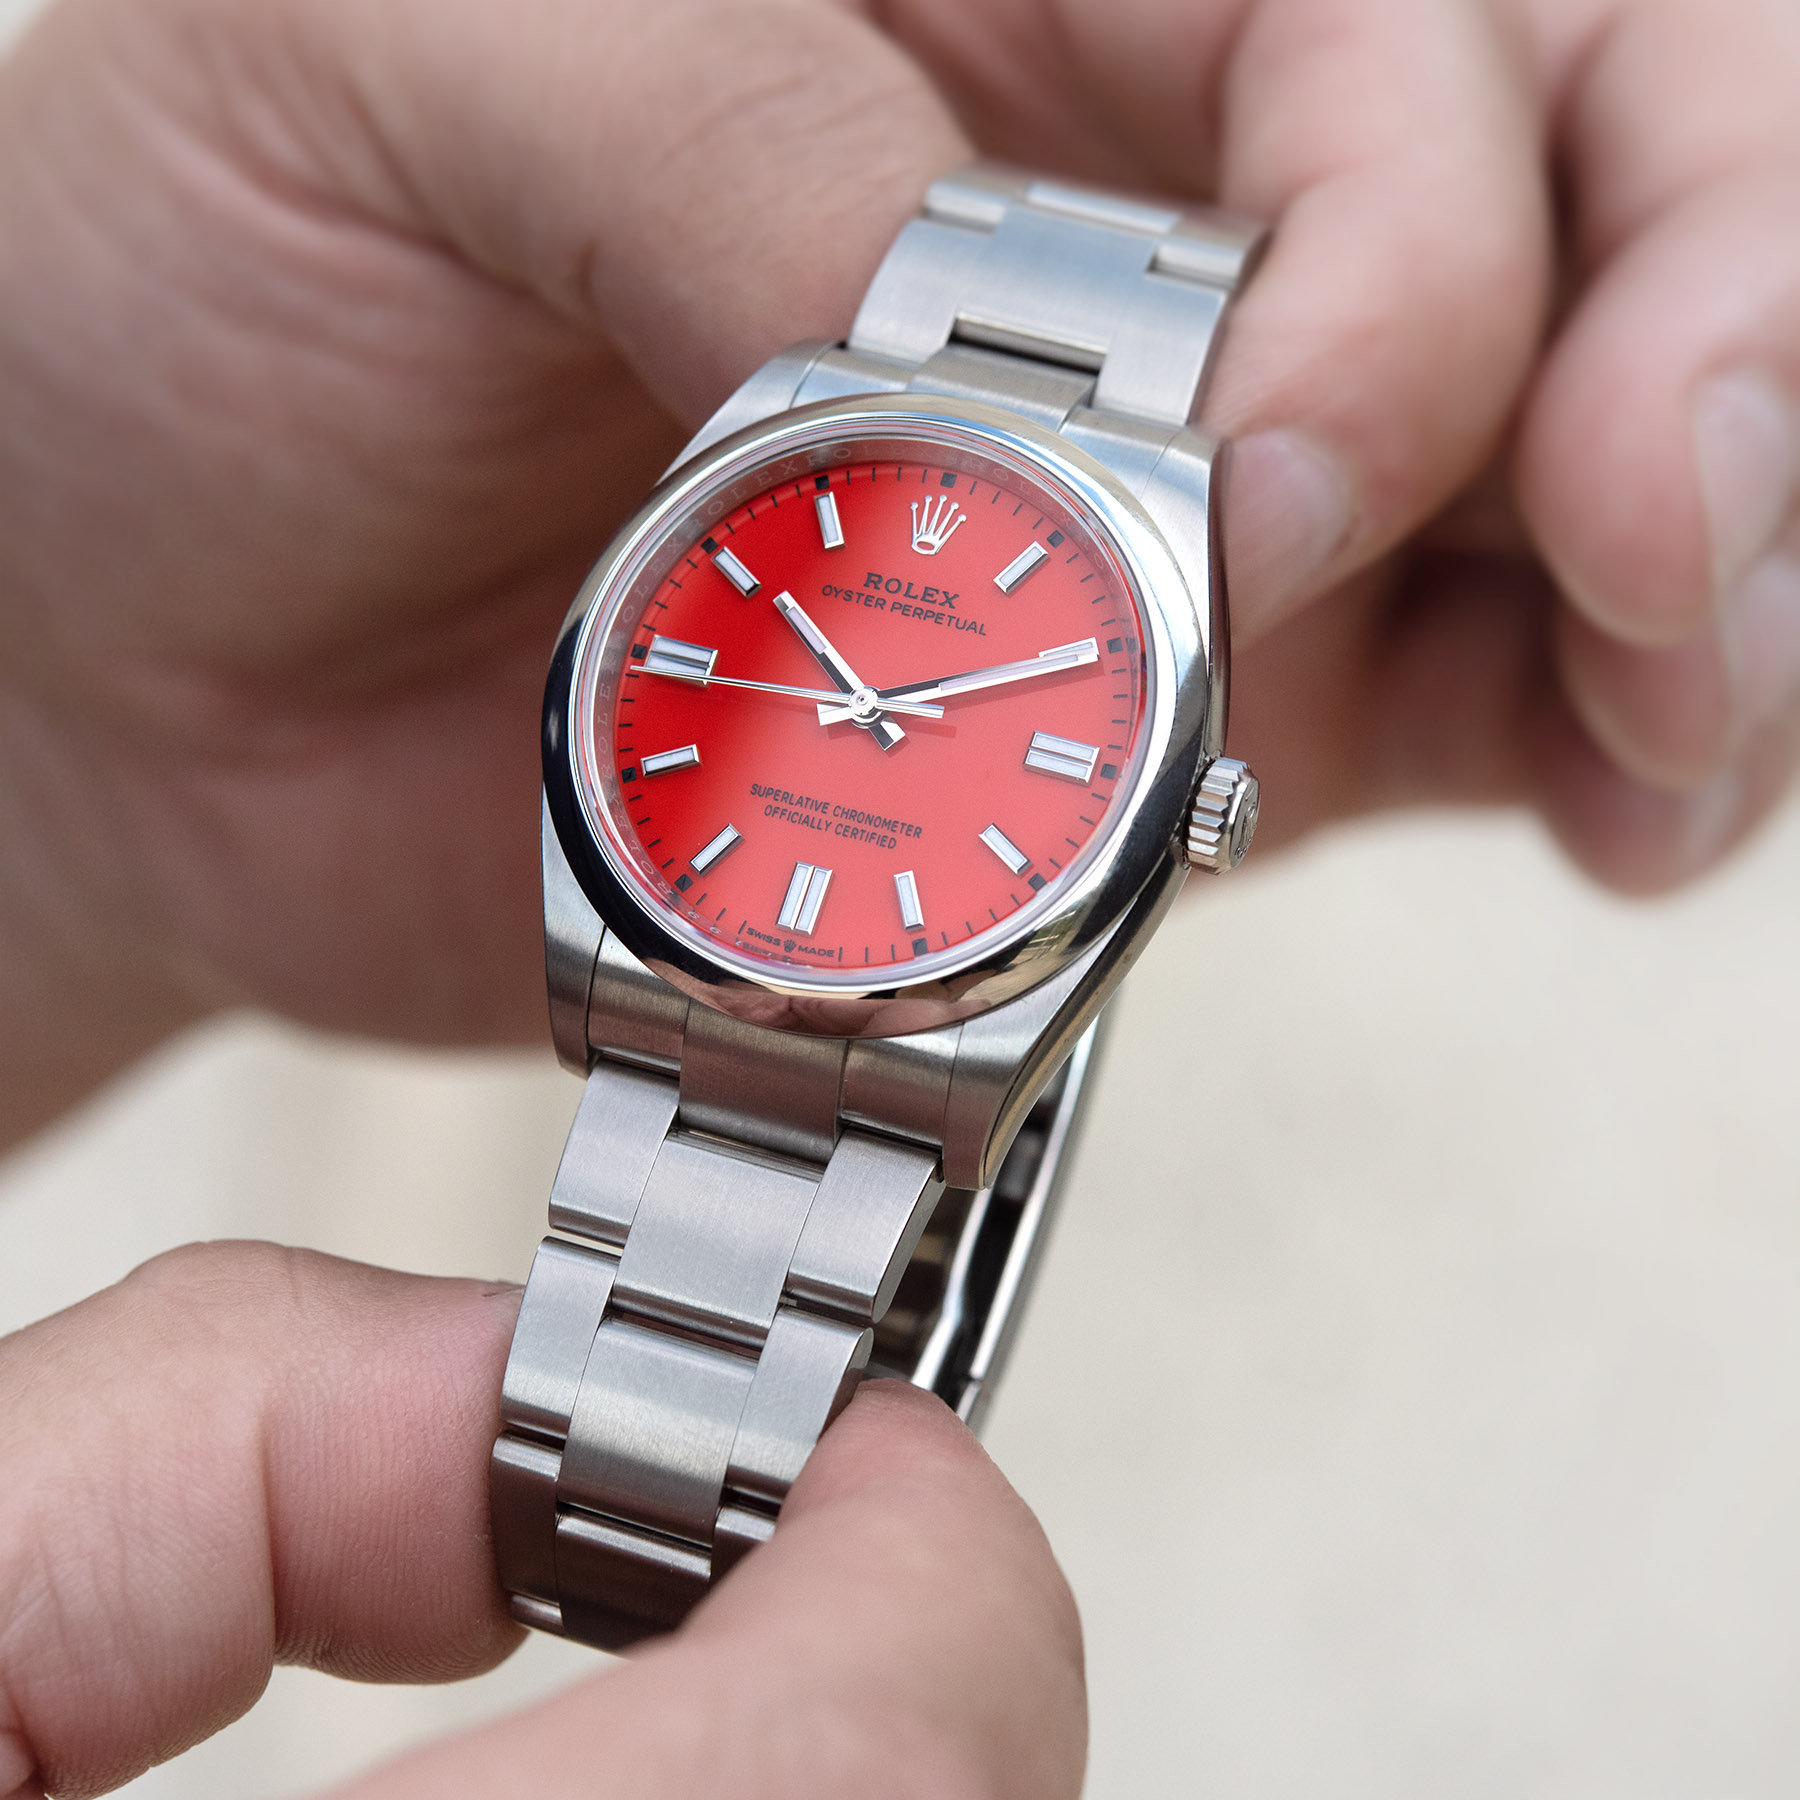 Rolex Oyster Perpetual 36mm Oystersteel 2020 Coral Red Review